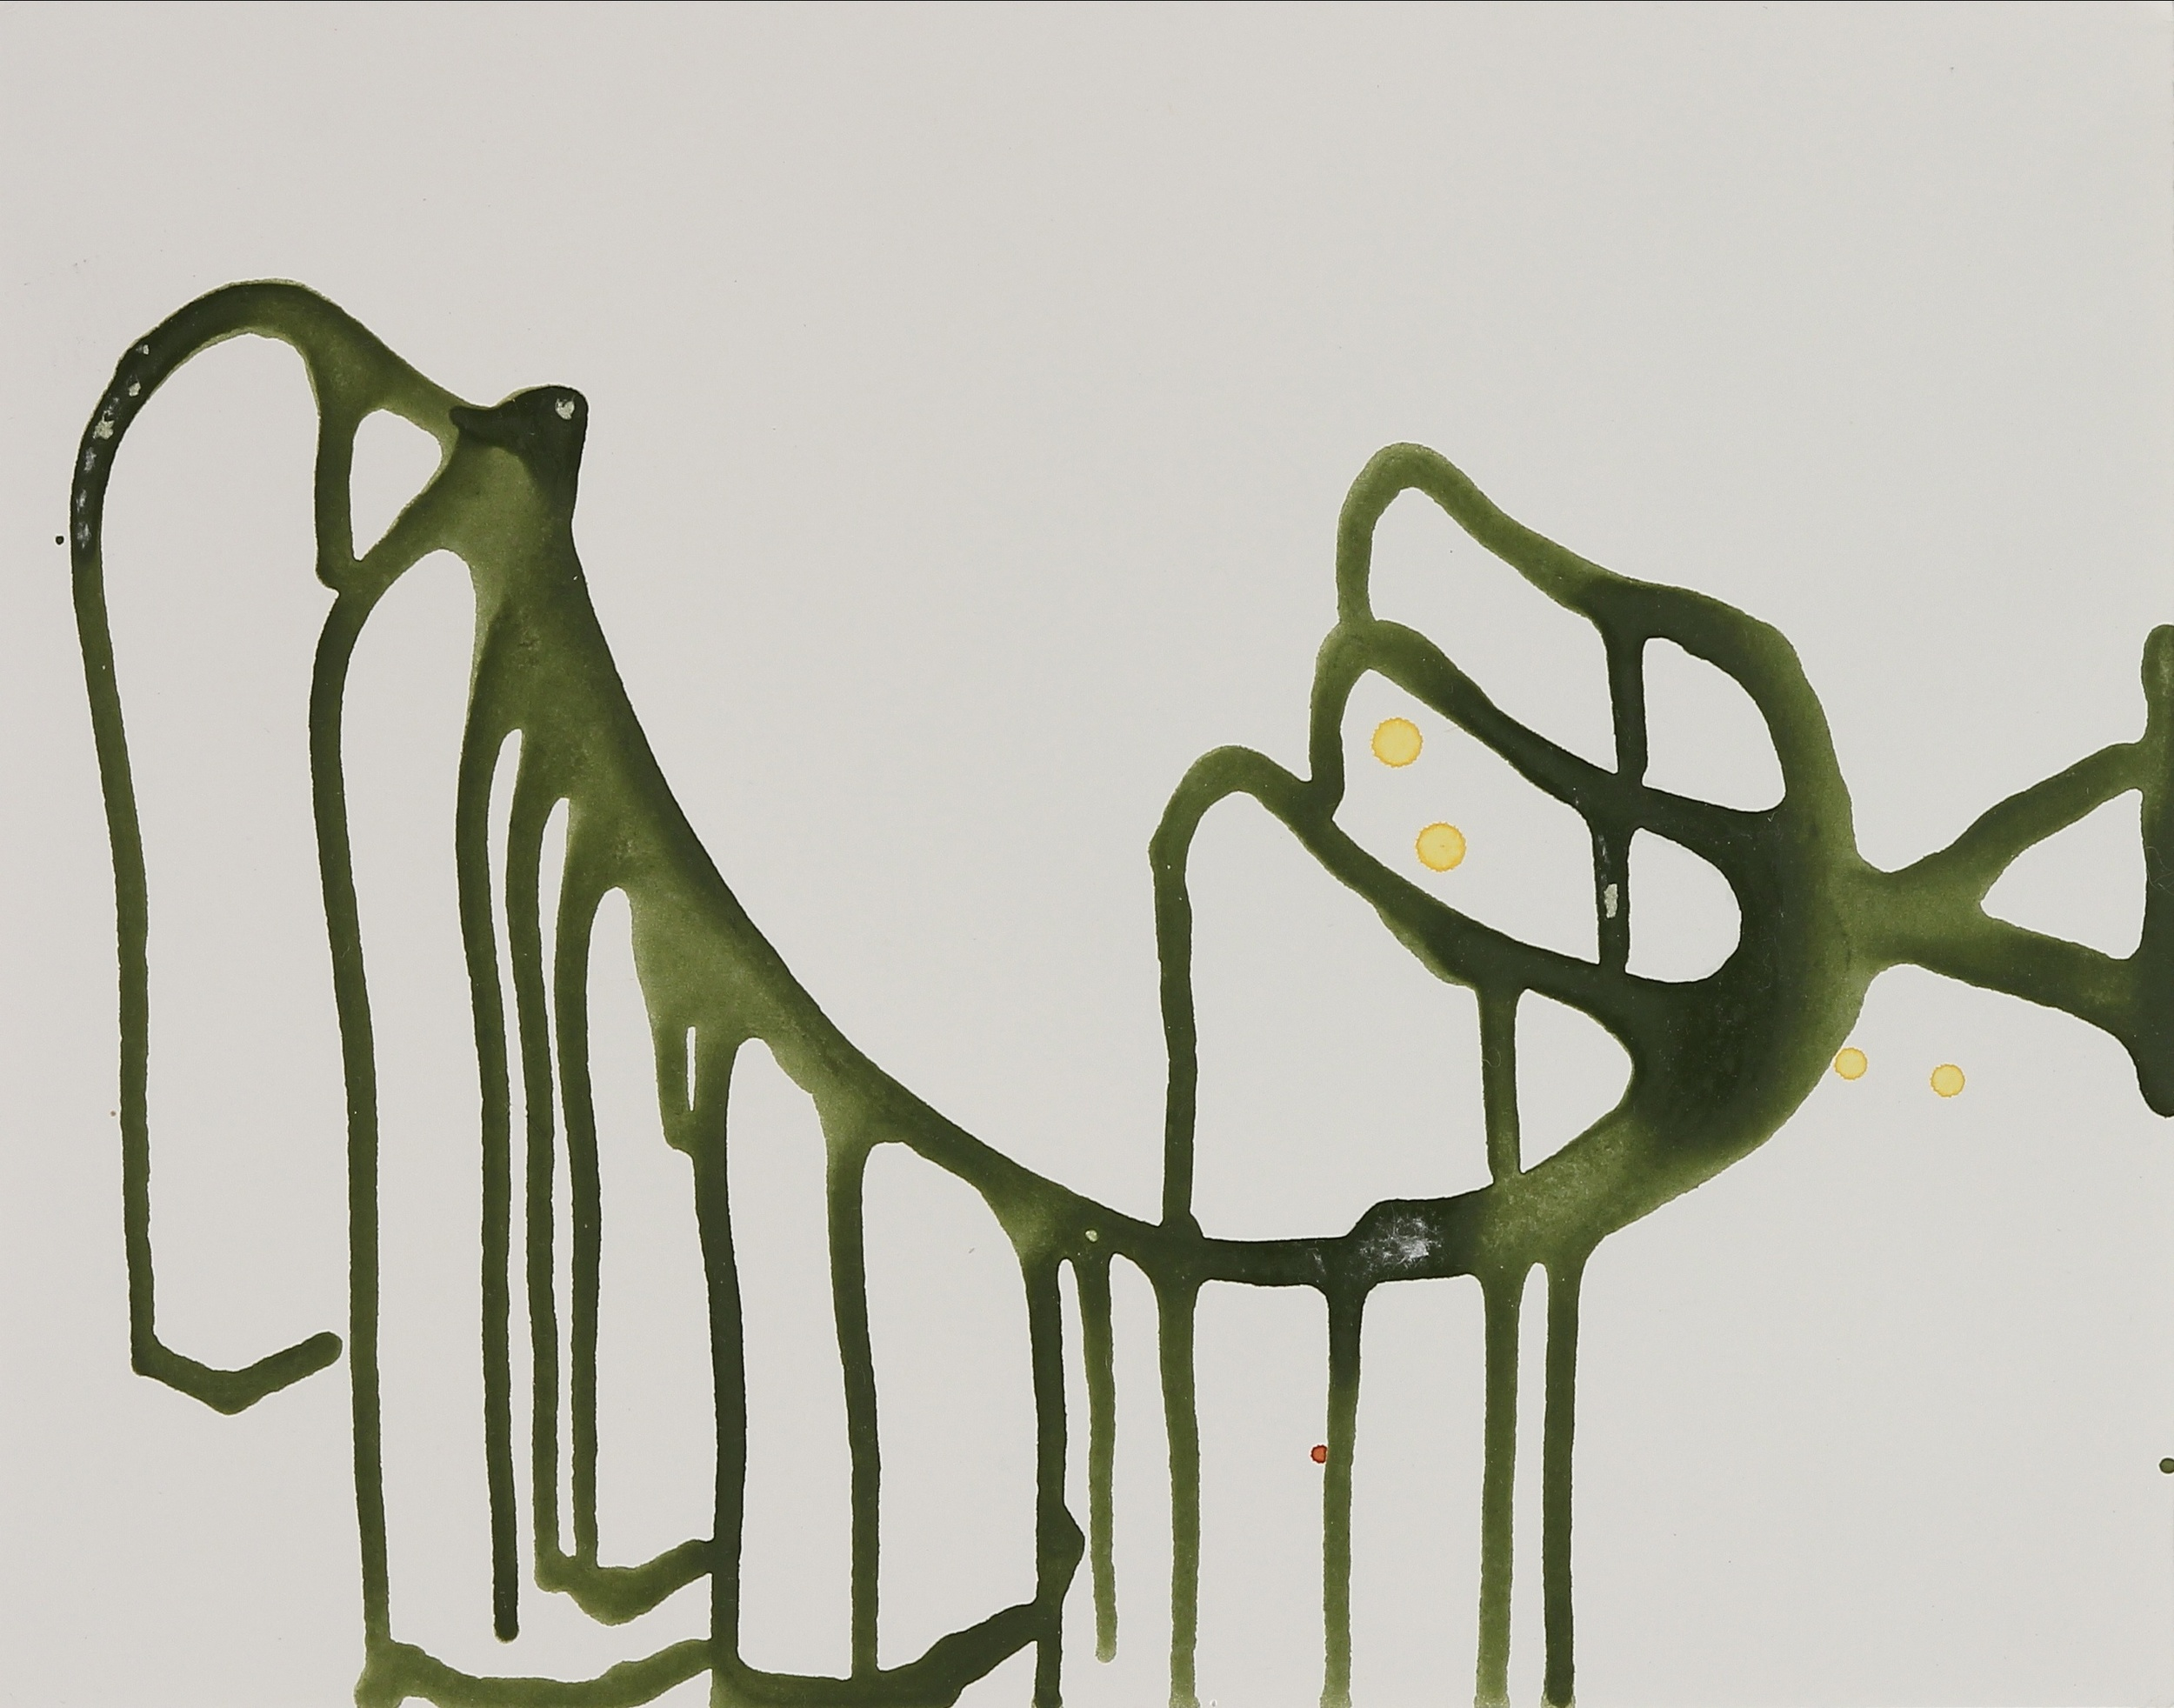 21. Chance Structures 15, 2014 (11 x 14).jpg